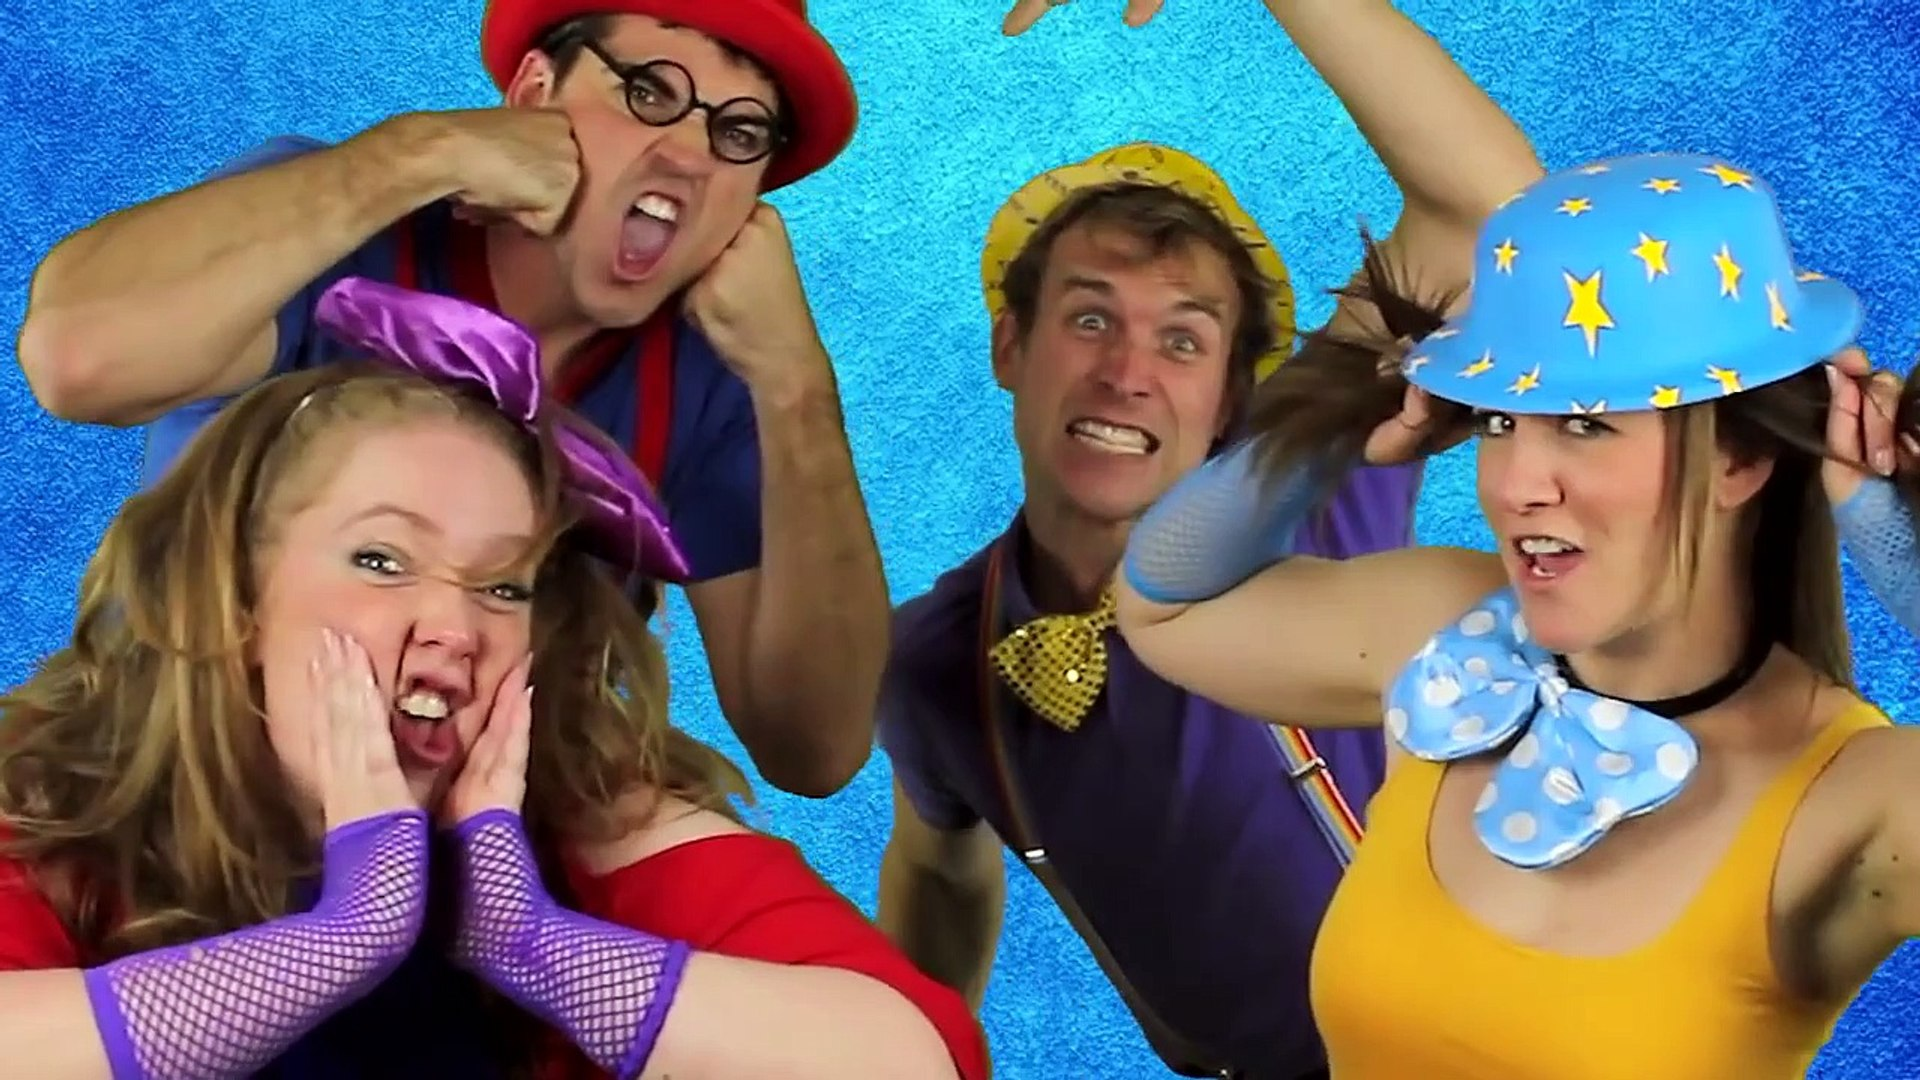 Make A Silly Face - Kids Song _ Kids music video-FfX03P6_Olc